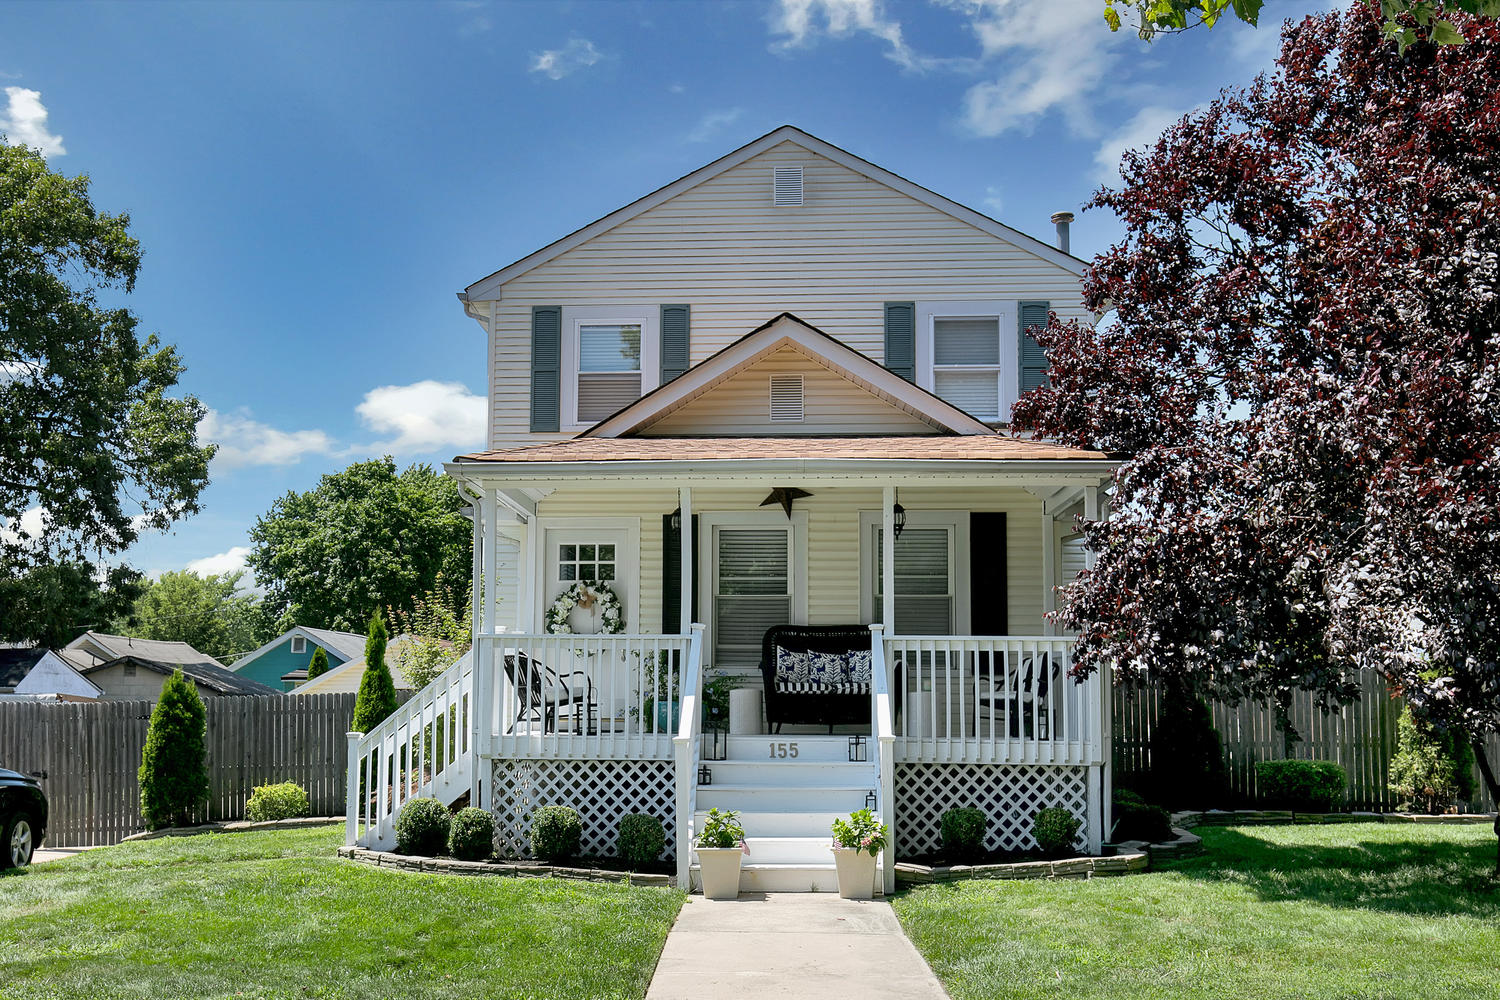 Single Family Home for Sale at Chic Classic Colonial 155 Mabel Ave. Middletown, New Jersey, 07748 United States